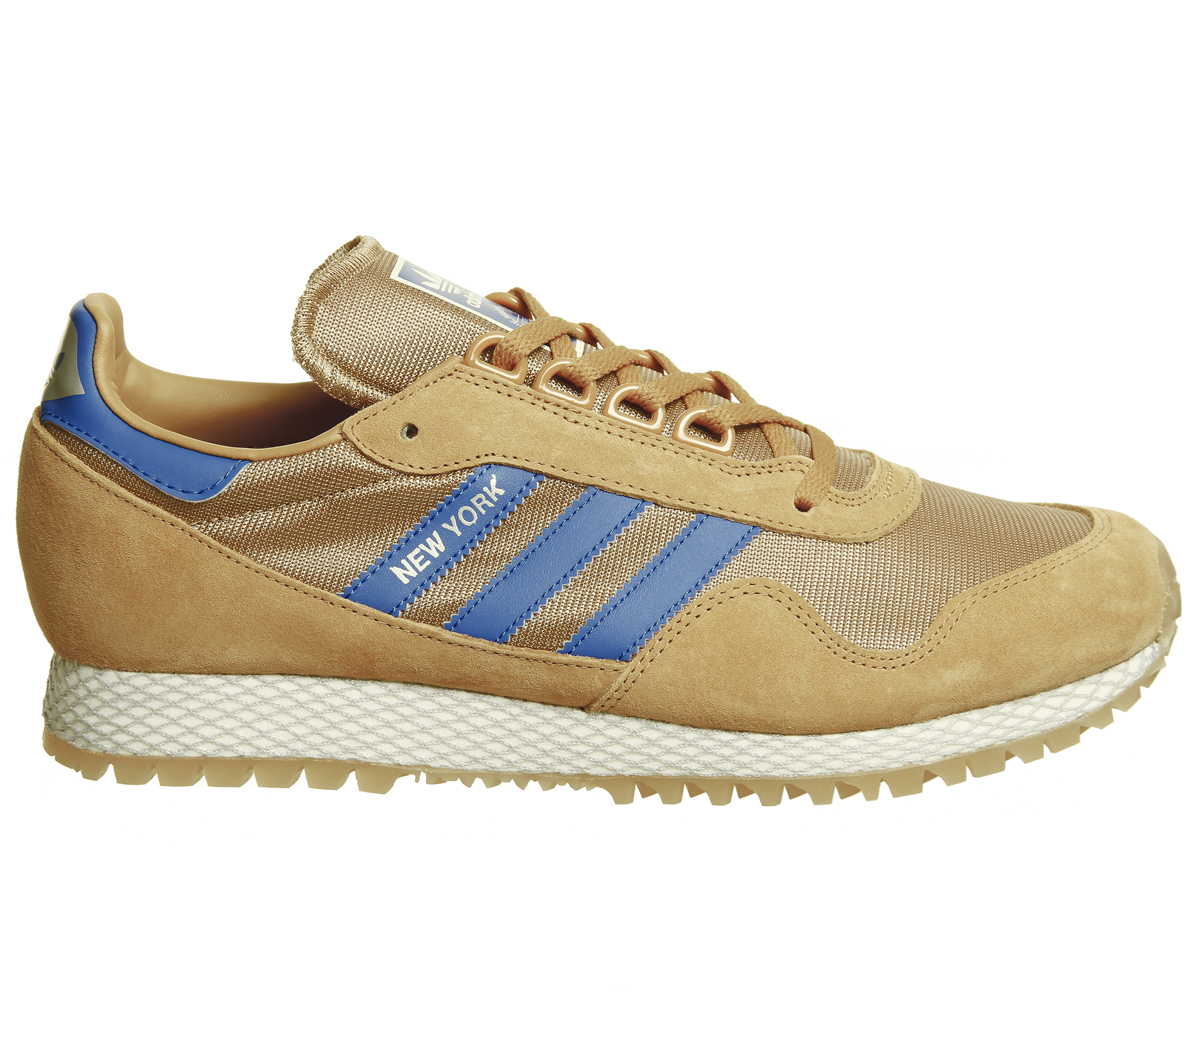 innovative design 711f2 01a26 Adidas-New-York-Trainers-MESA-CARDBOARD-GUM-Trainers-